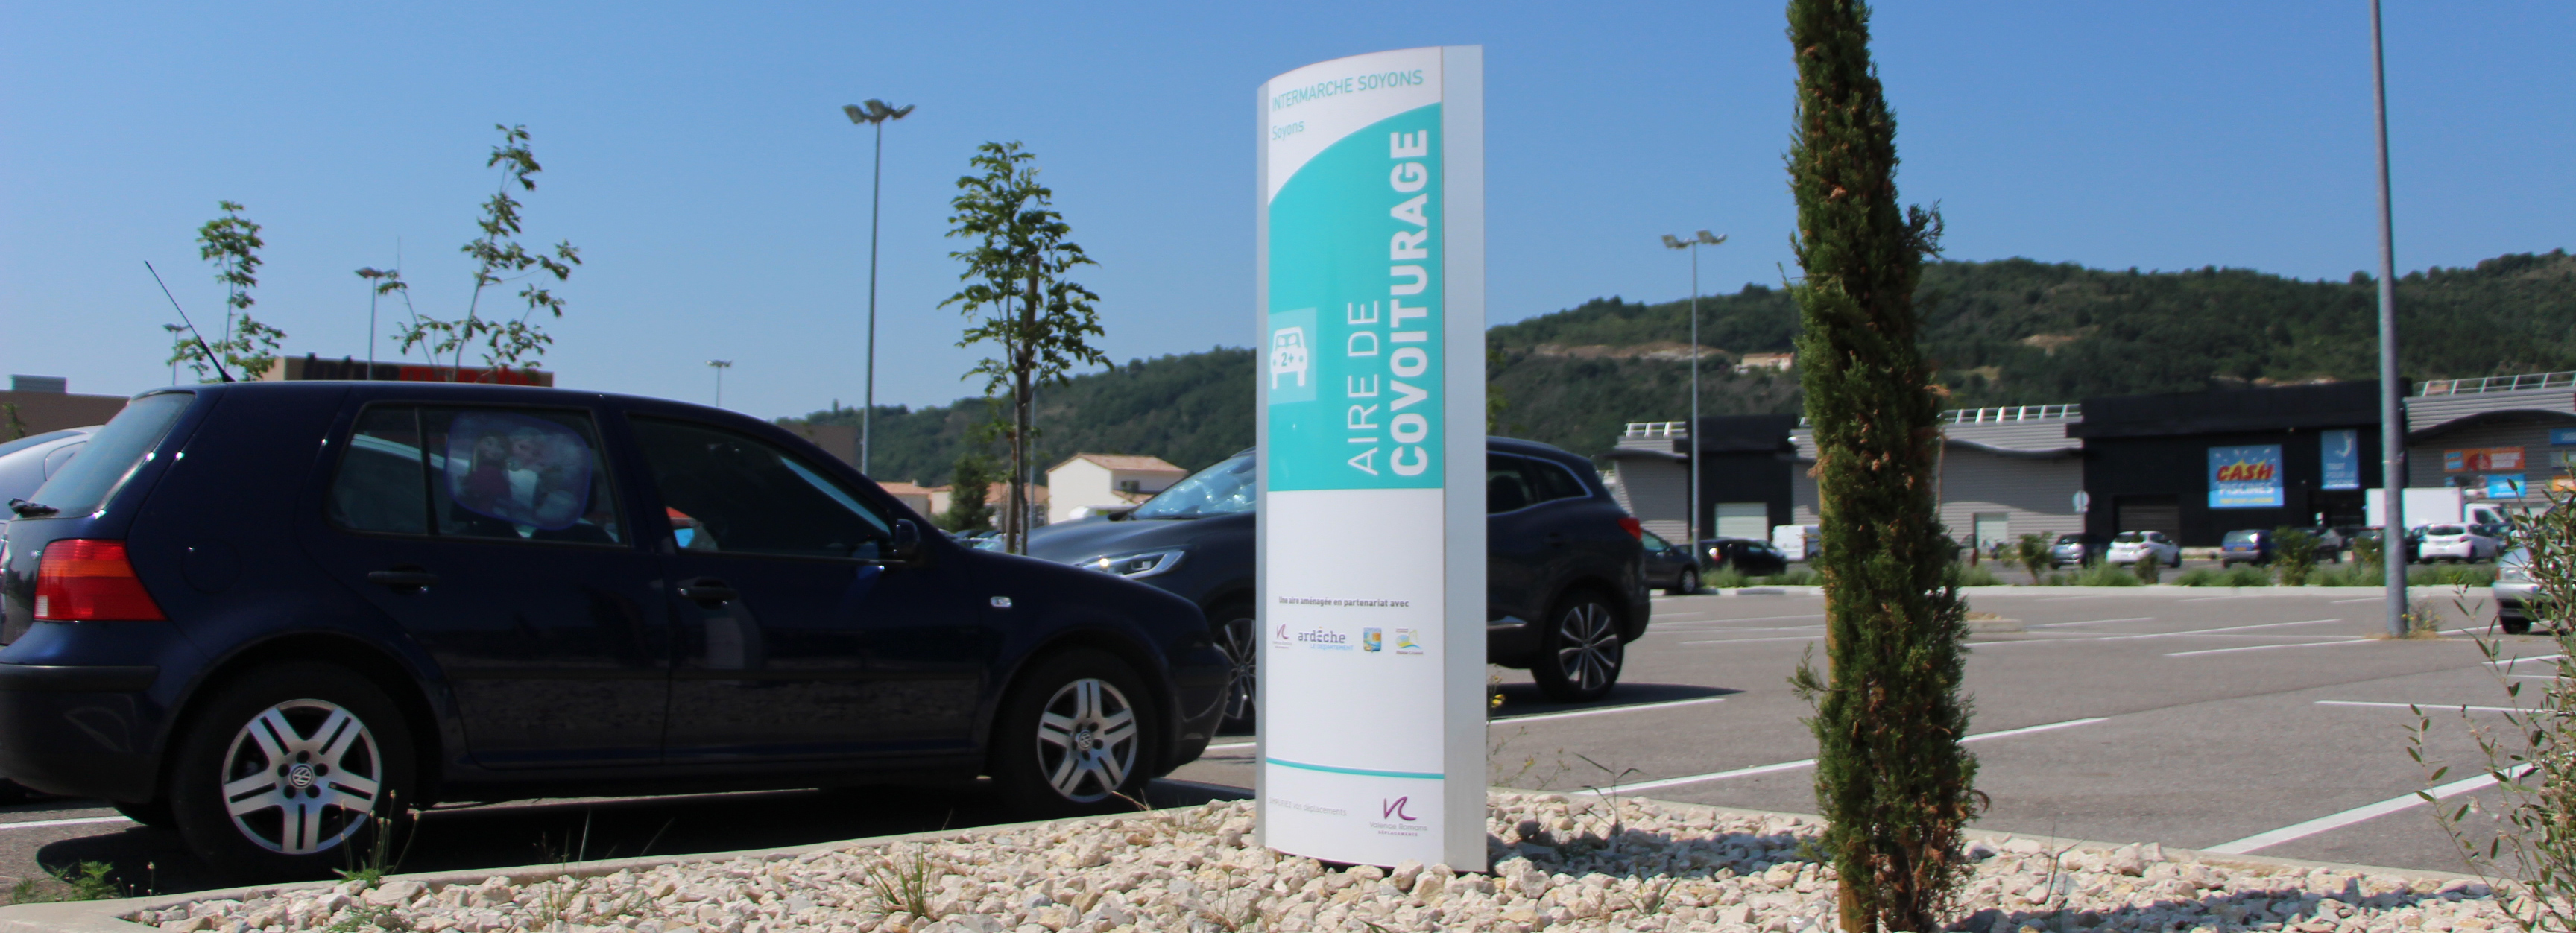 parking-covoiturage-drome-ardeche